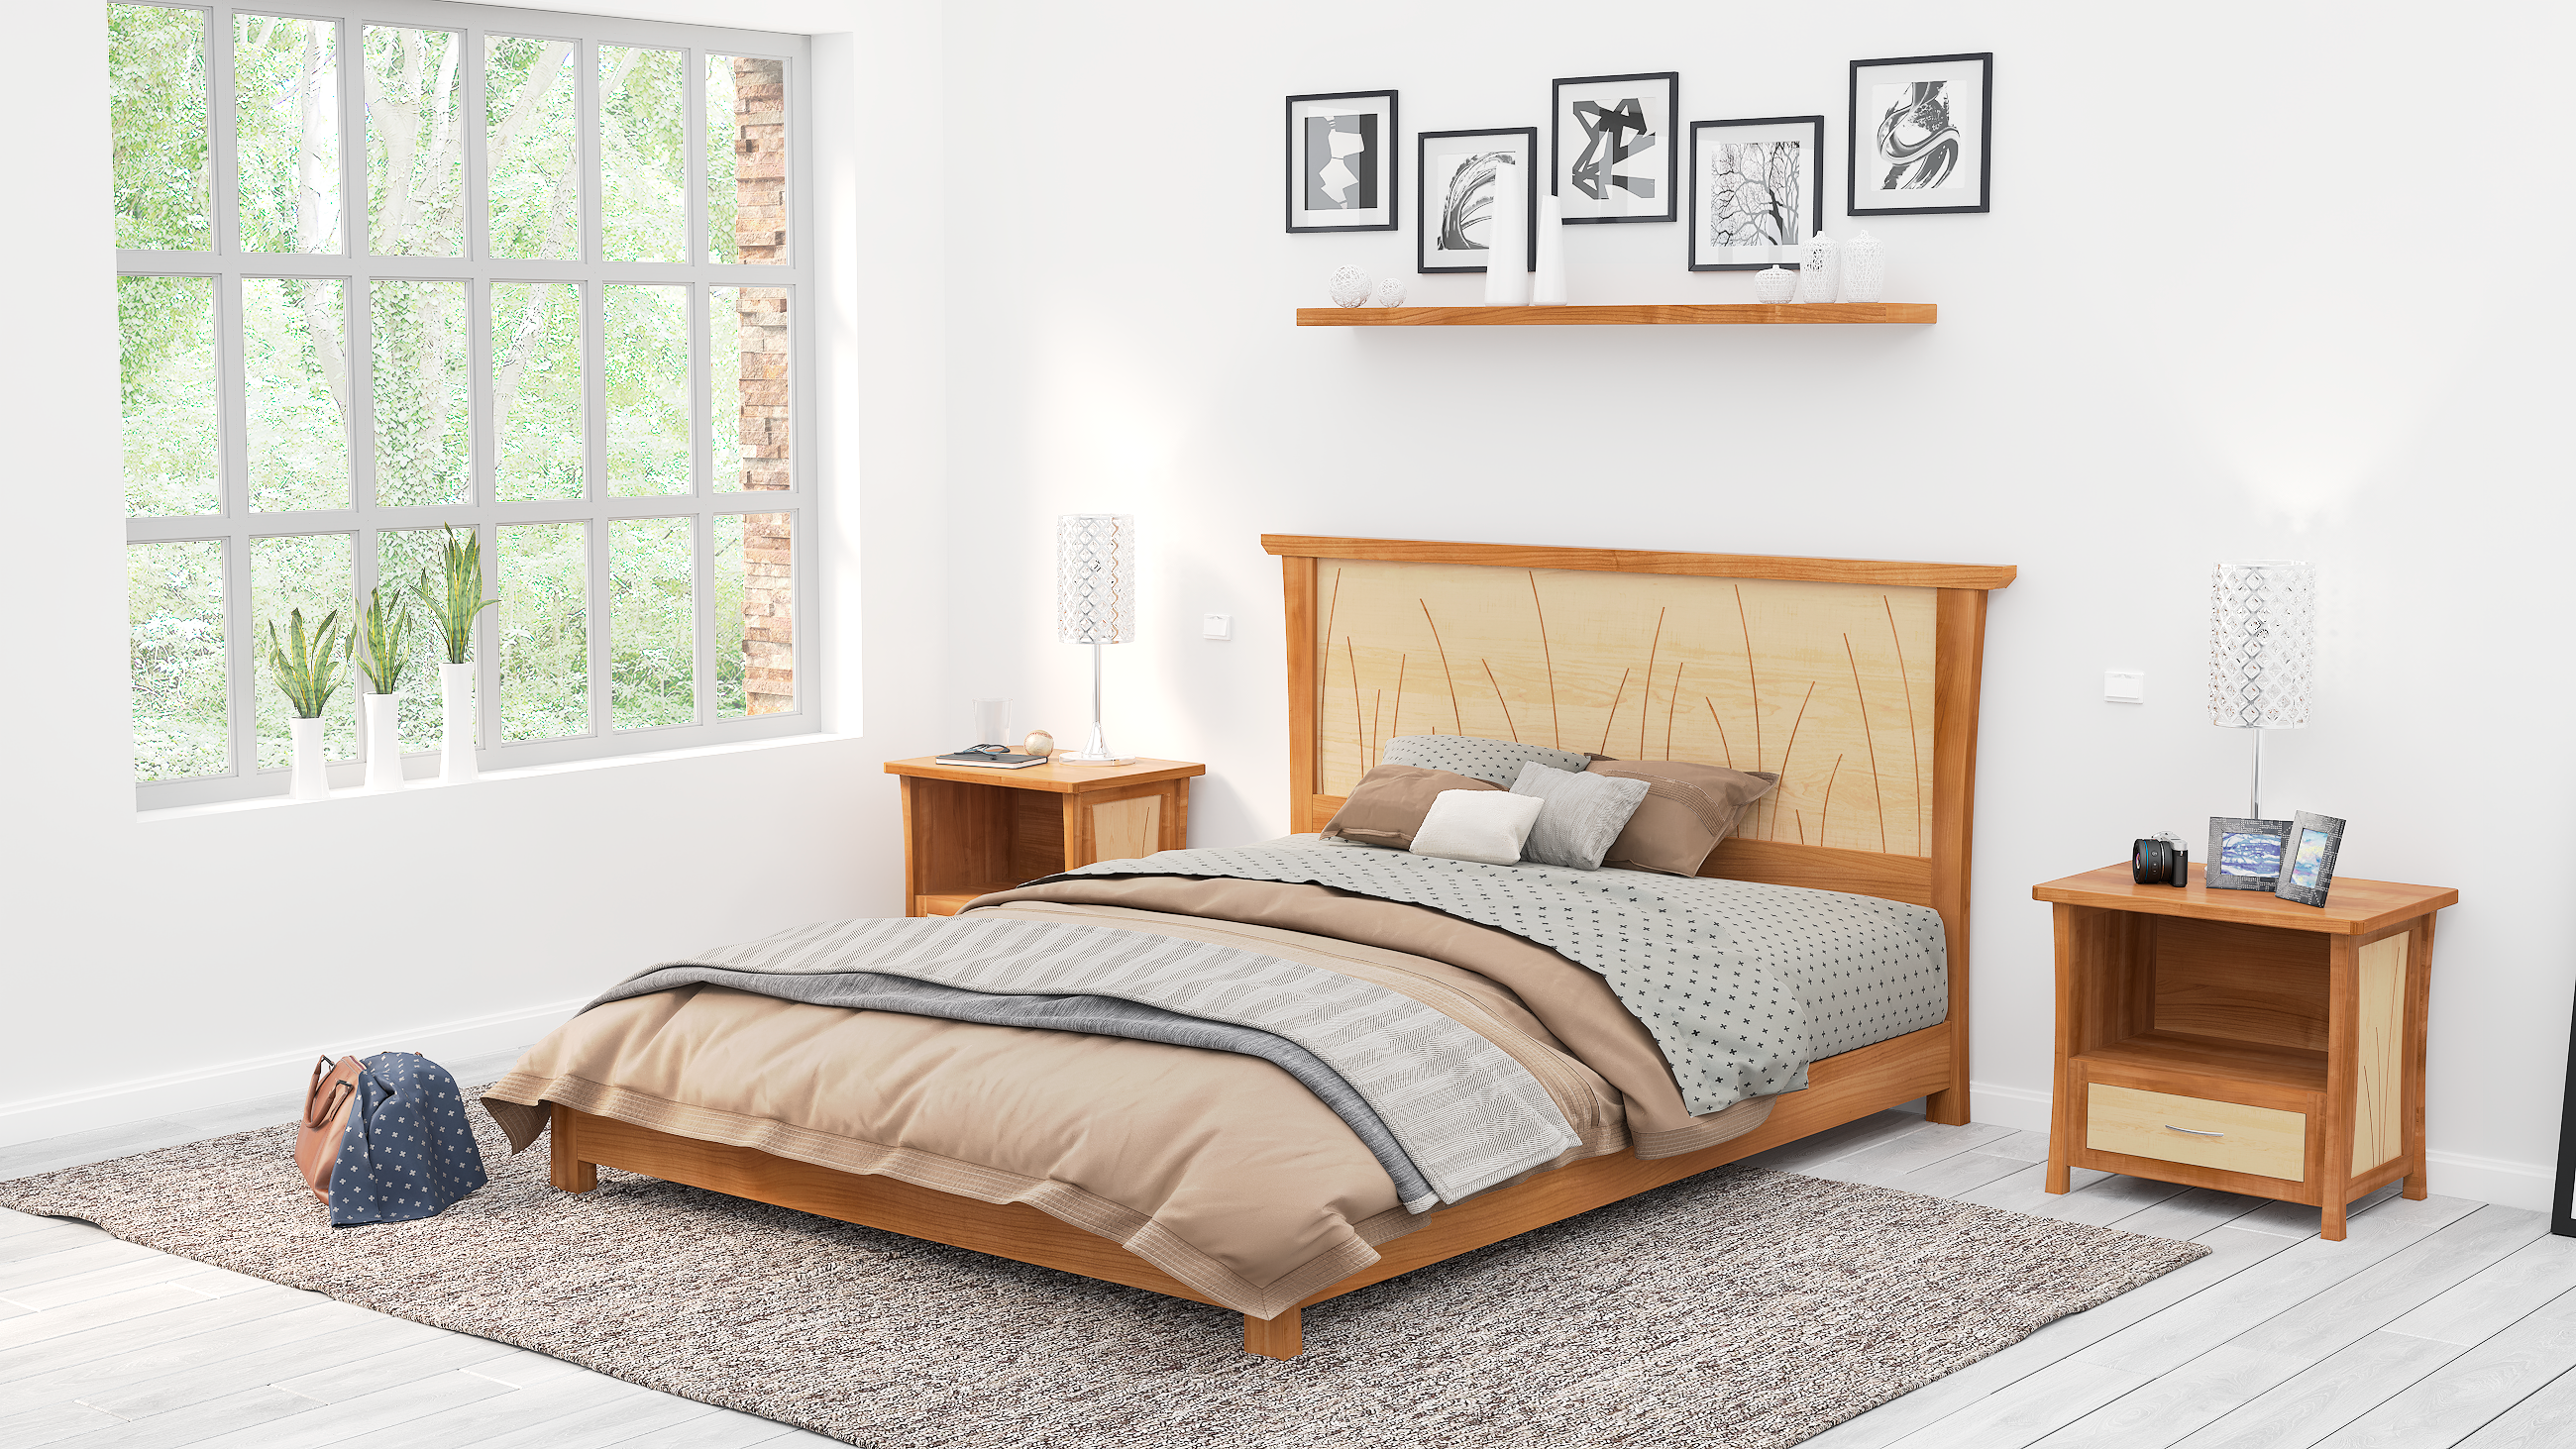 Custom Made Platform Bed Queen Size Cherry King Low Bed Frame Solid Wood Headboard By